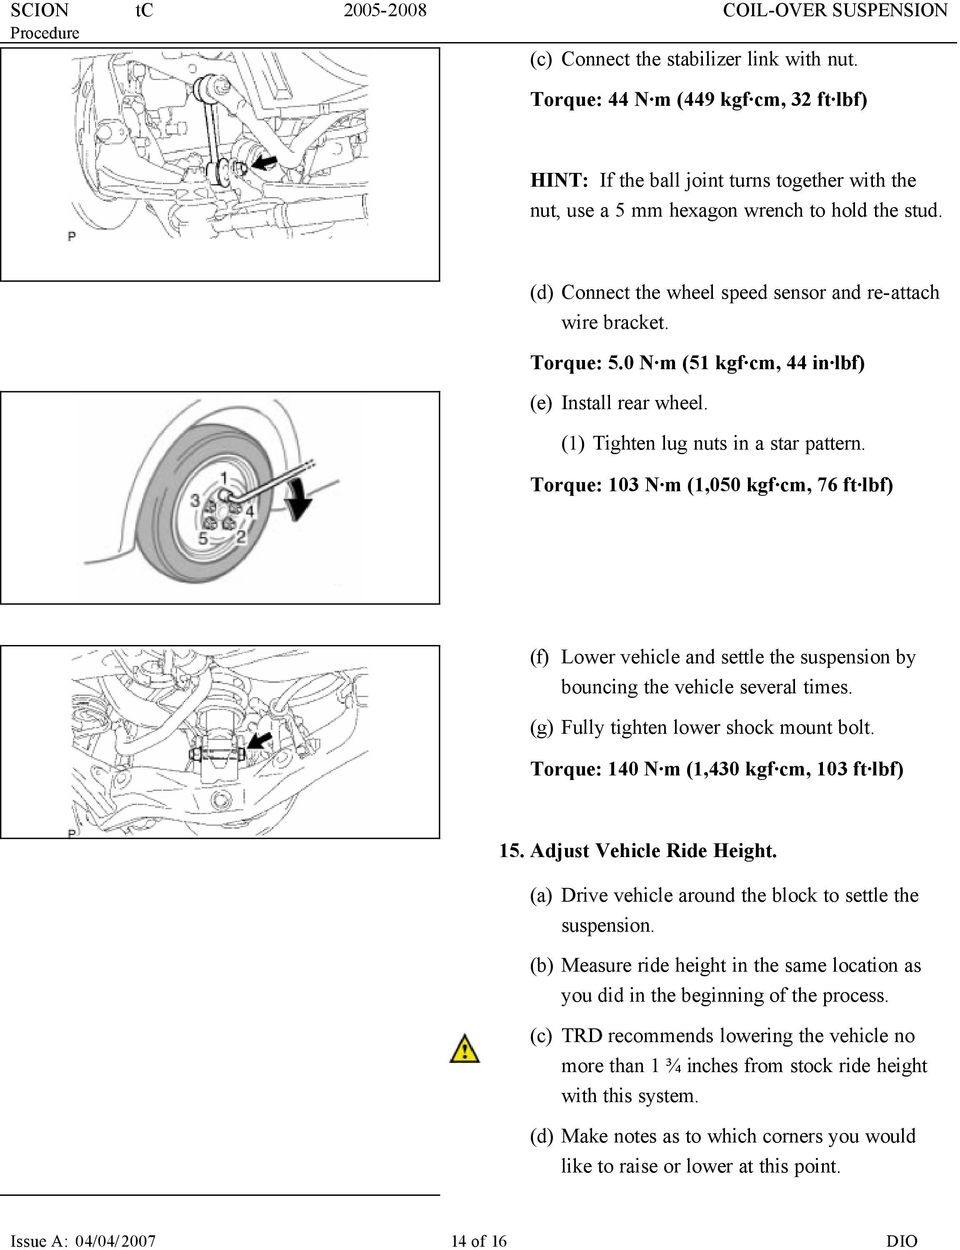 Torque: 103 N m (1,050 kgf cm, 76 ft lbf) (f) Lower vehicle and settle the suspension by bouncing the vehicle several times. (g) Fully tighten lower shock mount bolt.